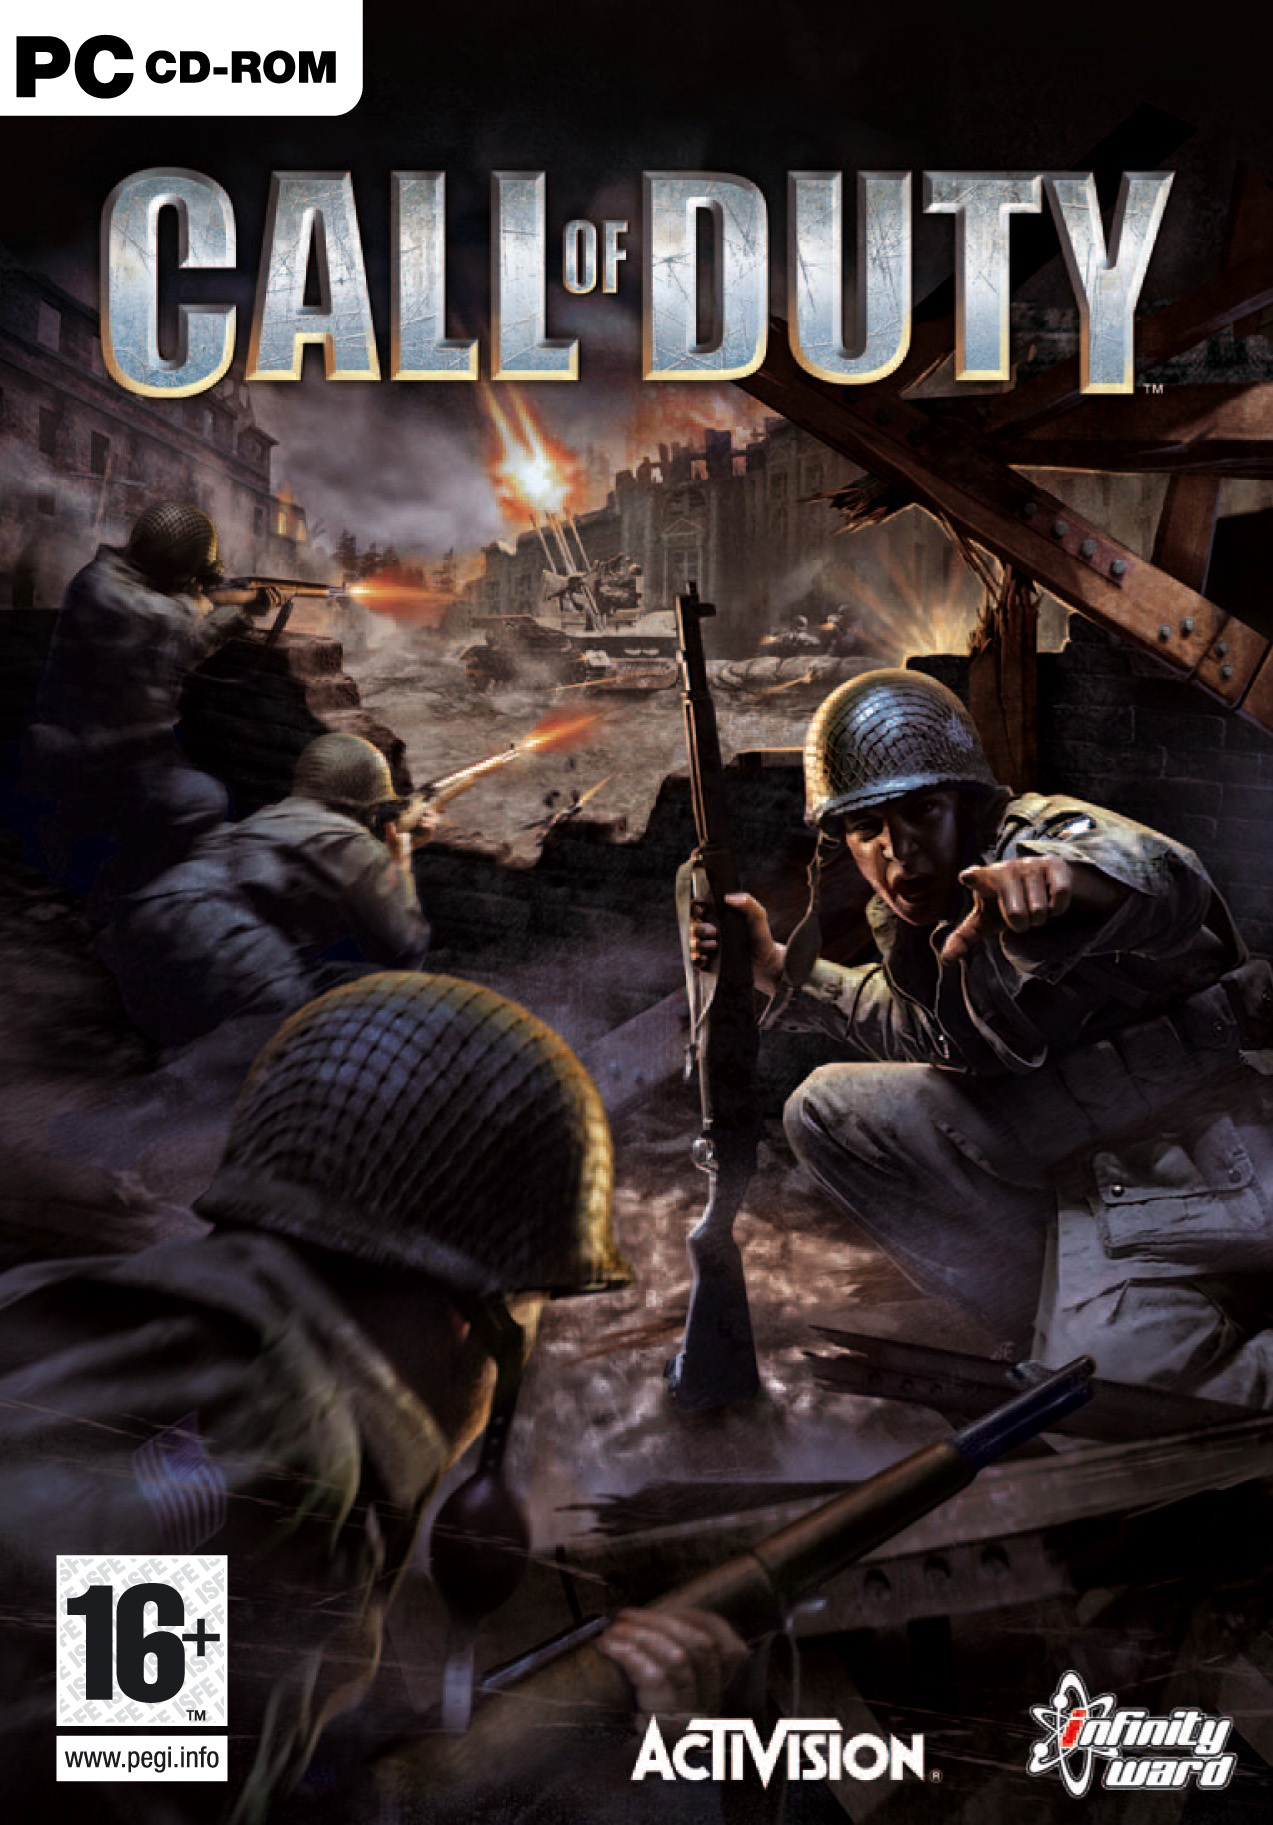 Image result for Call of Duty 1 cover pc